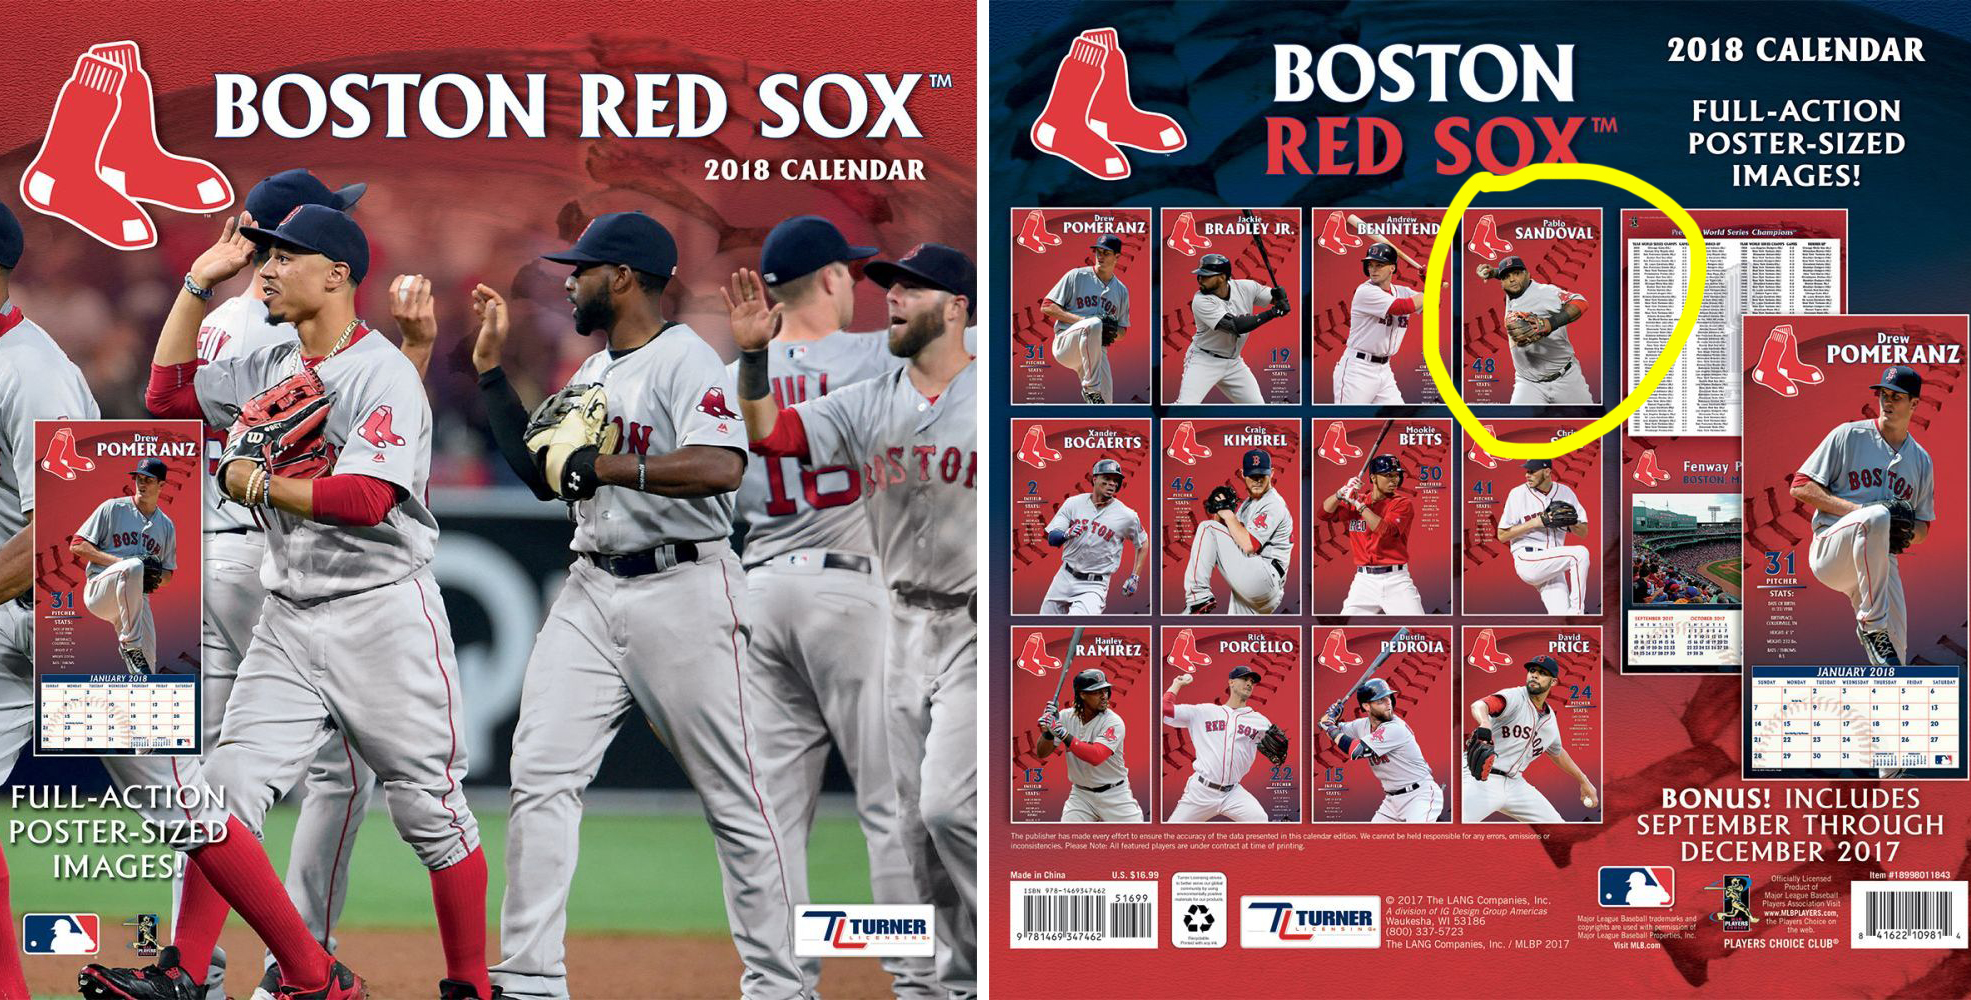 Red Sox's 2018 calendar features Pablo Sandoval for some reason